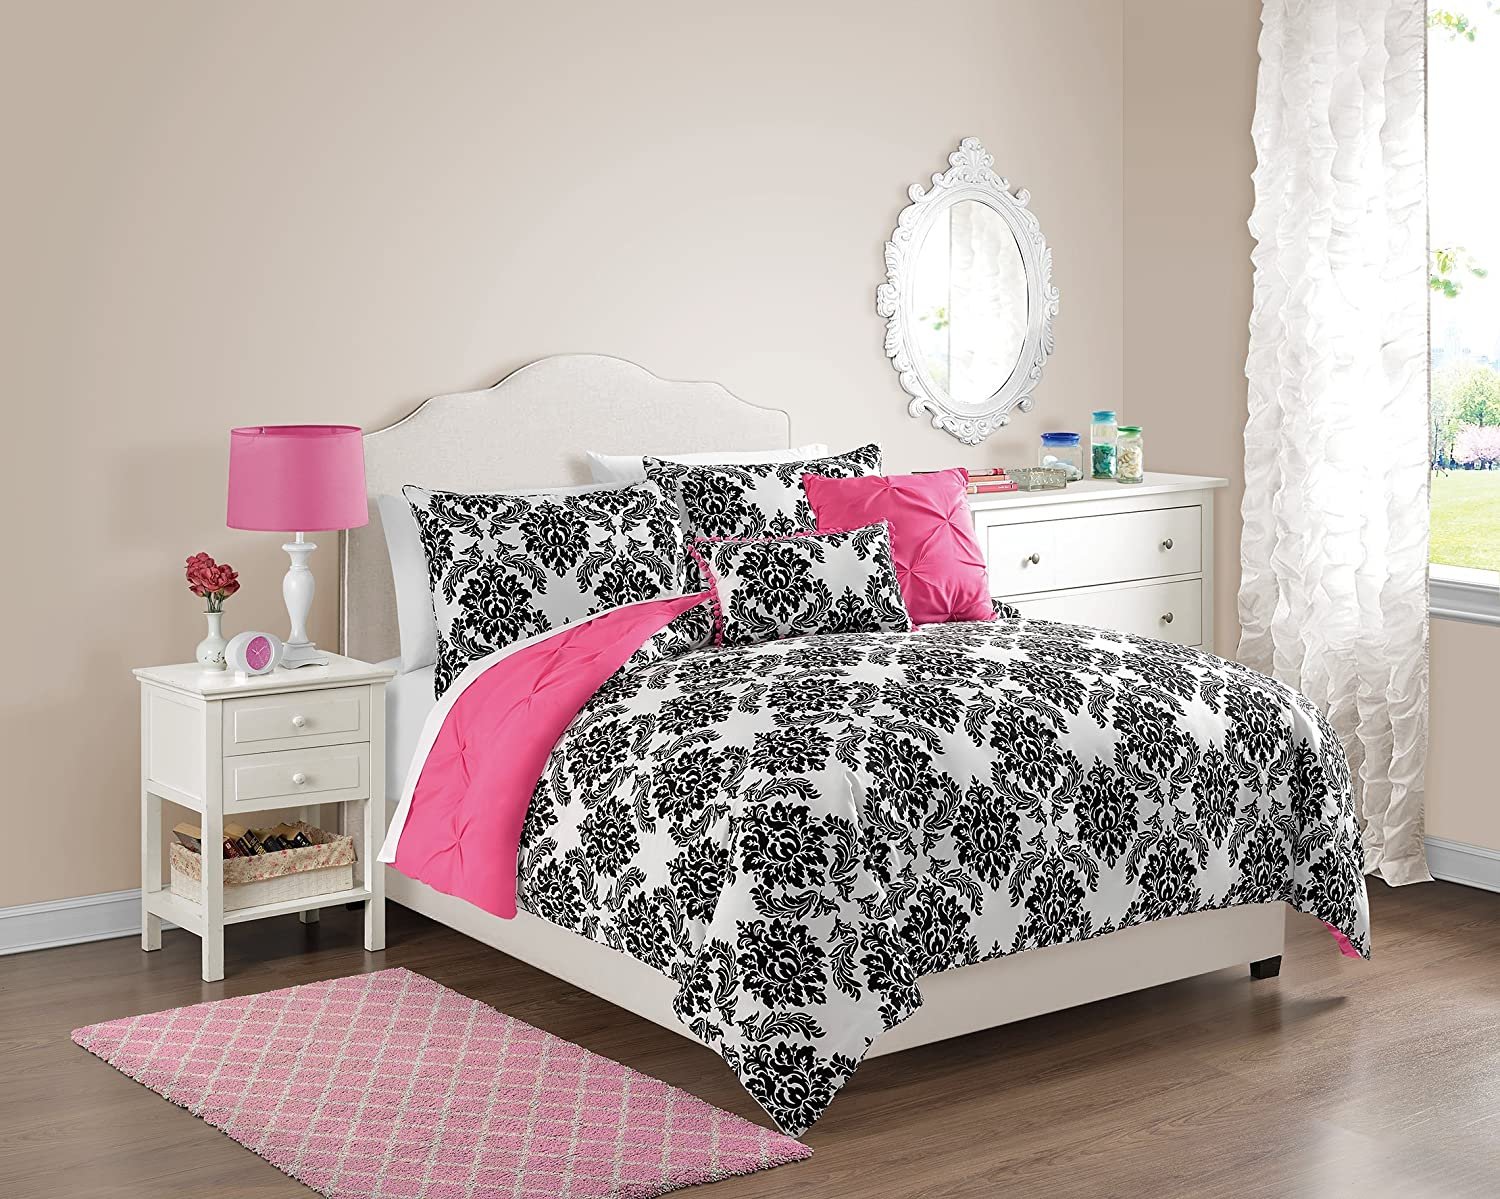 VCNY 5 Piece Olivia Reversible Comforter Set, Full/Queen, Hot Pink